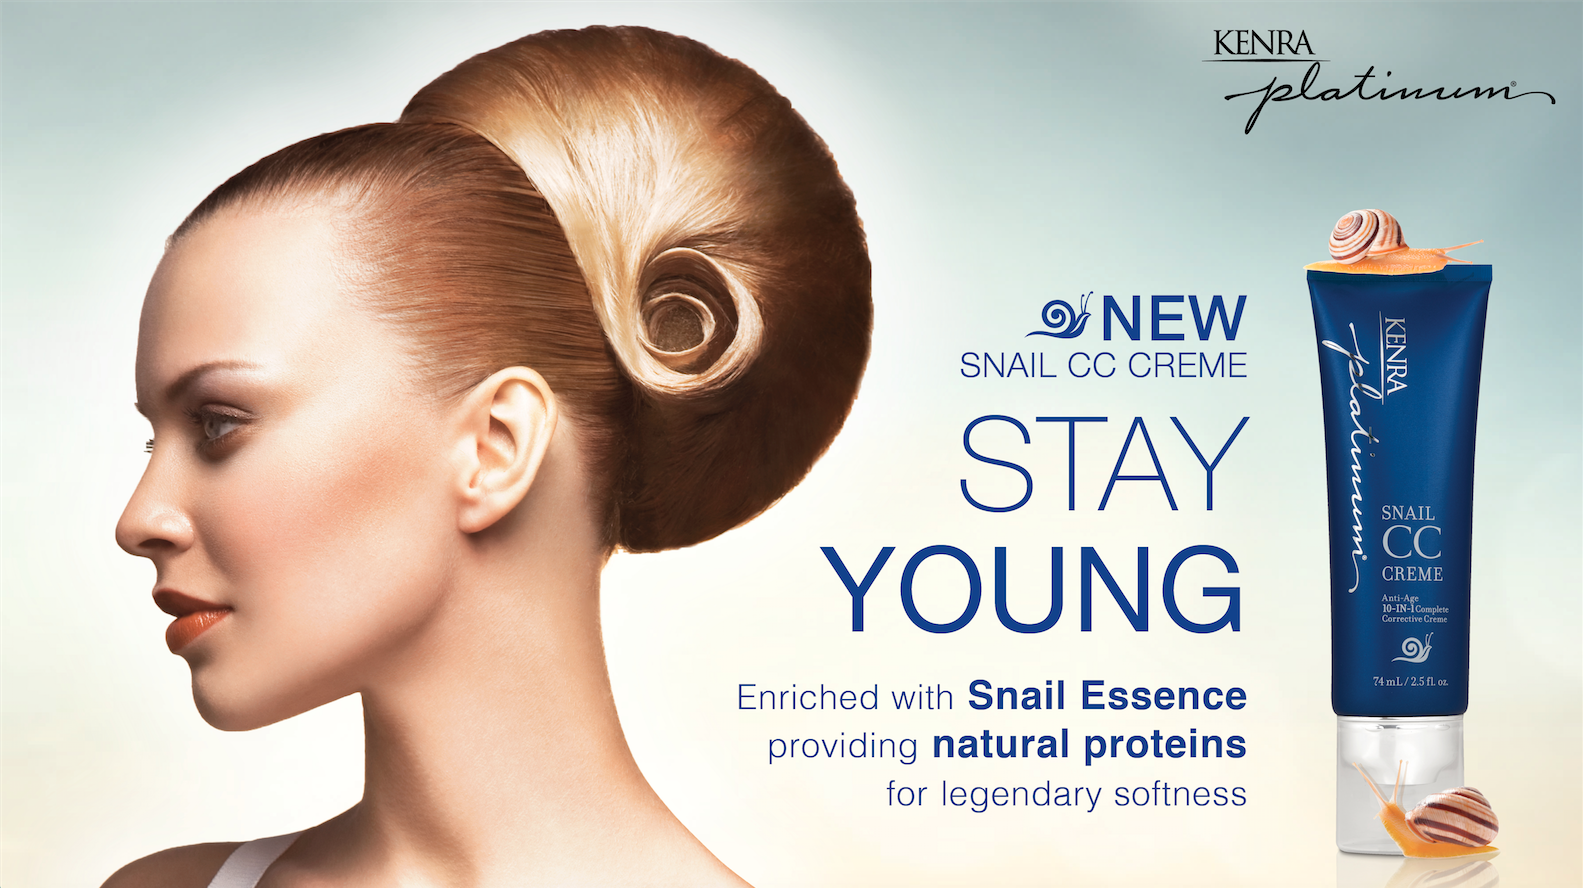 Kenra Platinum Snail CC Creme for Hair